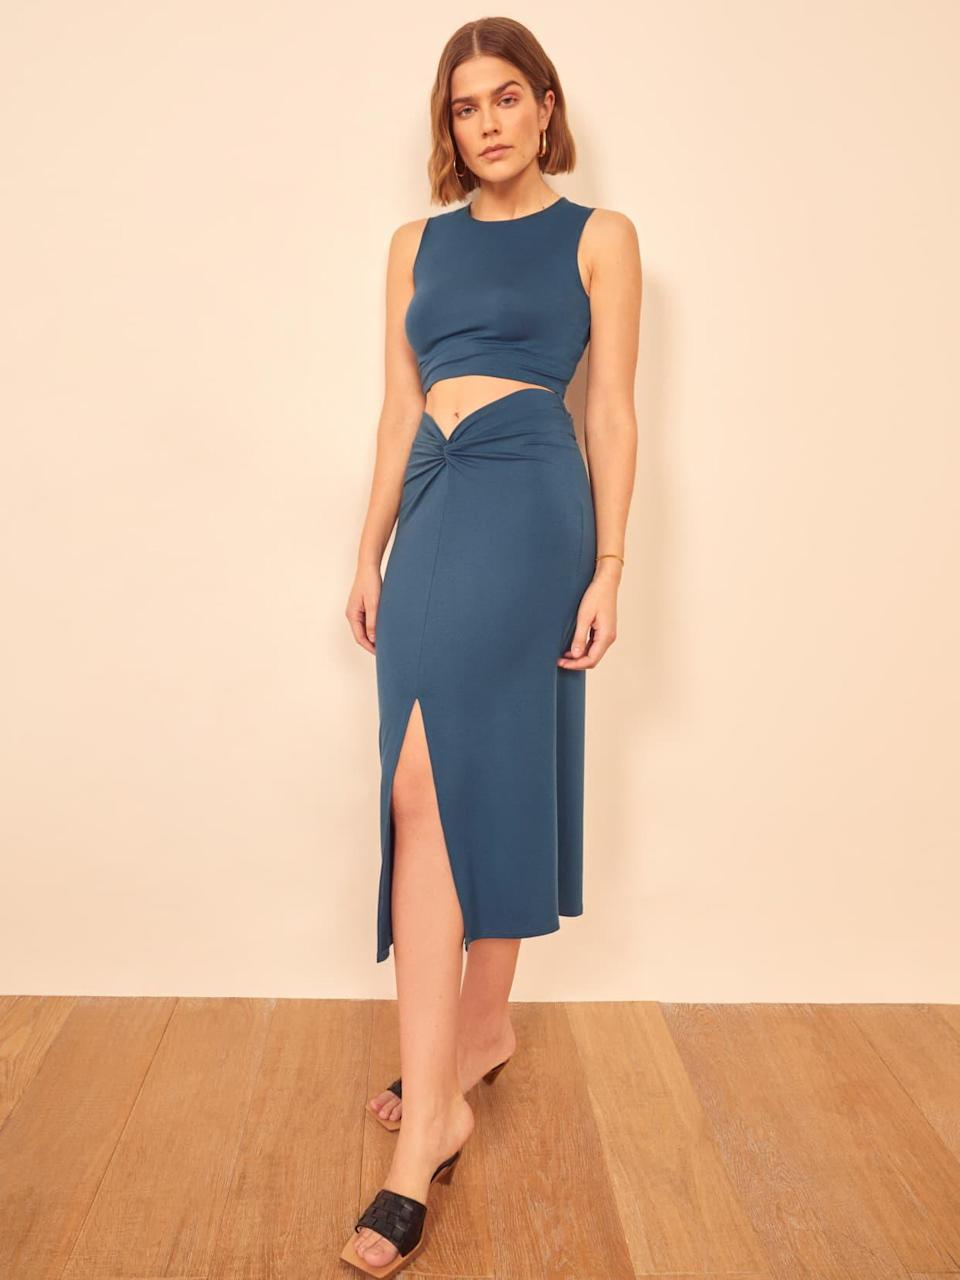 "<br> <br> <strong>Reformation</strong> Rylan Two Piece, $, available at <a href=""https://go.skimresources.com/?id=30283X879131&url=https%3A%2F%2Fwww.thereformation.com%2Fproducts%2Frylan-two-piece%3Fcolor%3DOcean"" rel=""nofollow noopener"" target=""_blank"" data-ylk=""slk:Reformation"" class=""link rapid-noclick-resp"">Reformation</a>"